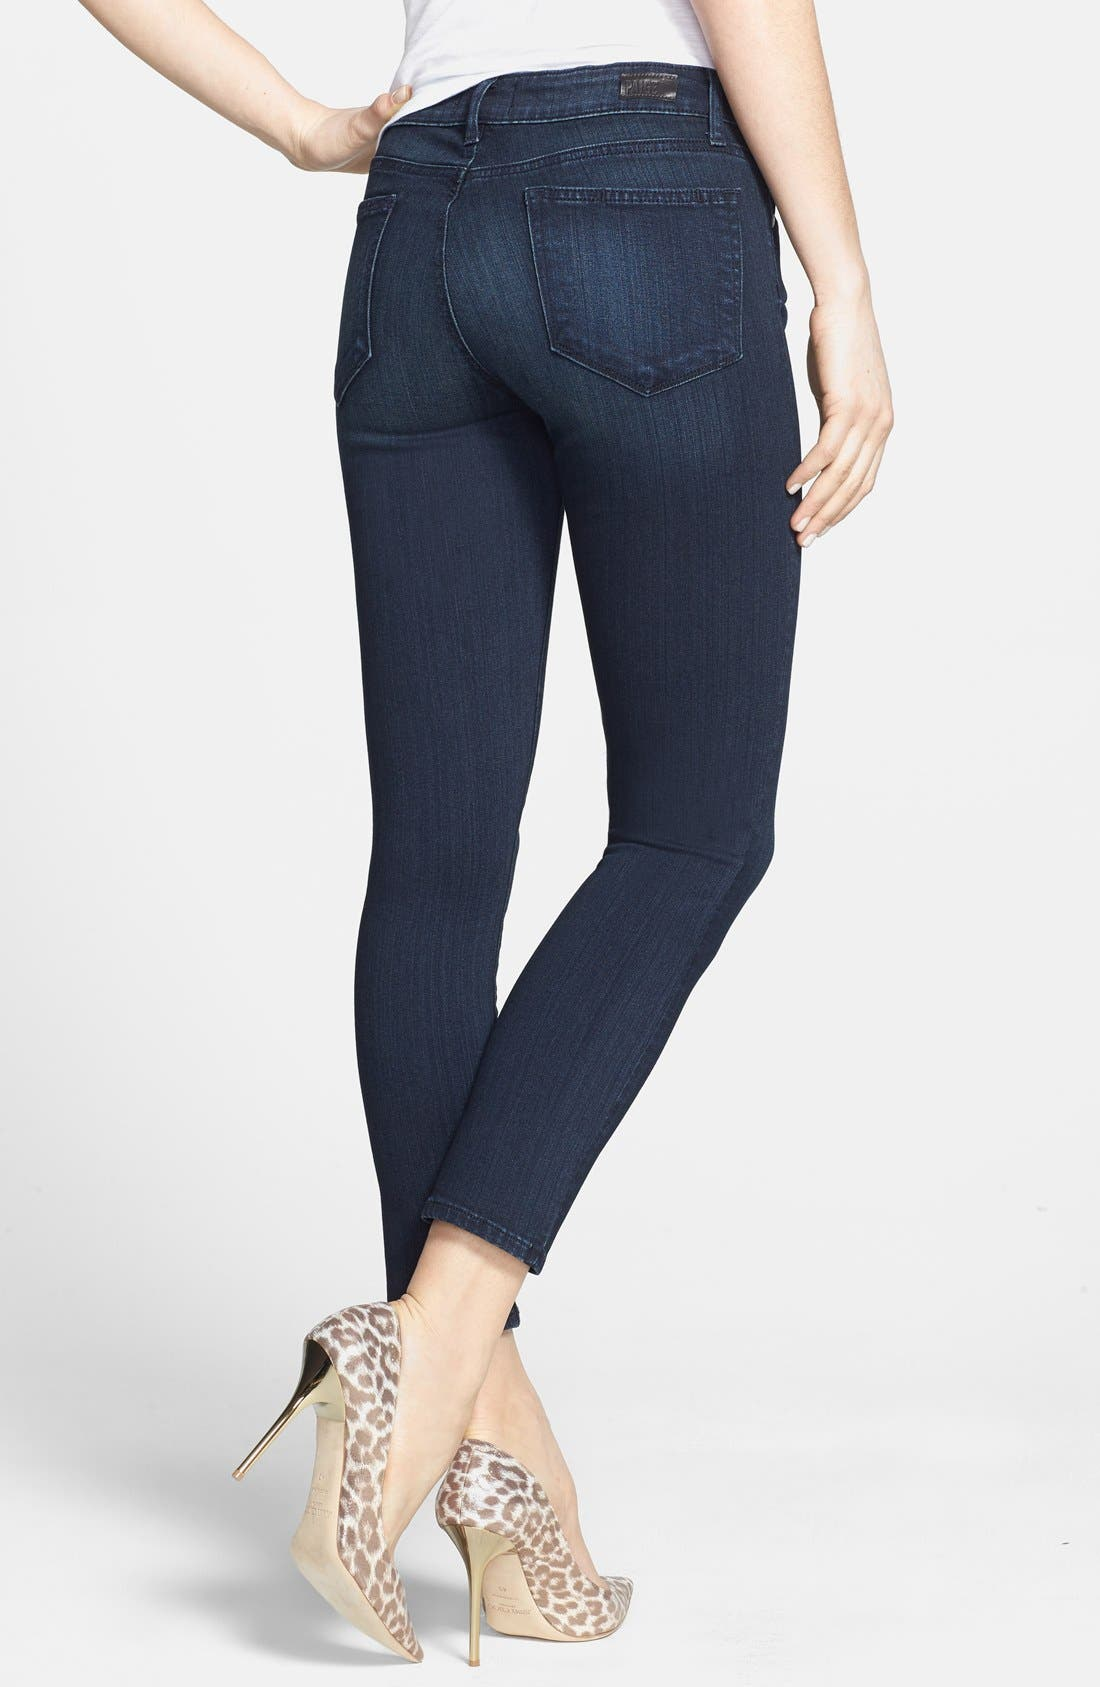 Transcend - Verdugo Crop Skinny Jeans,                             Alternate thumbnail 2, color,                             Midlake